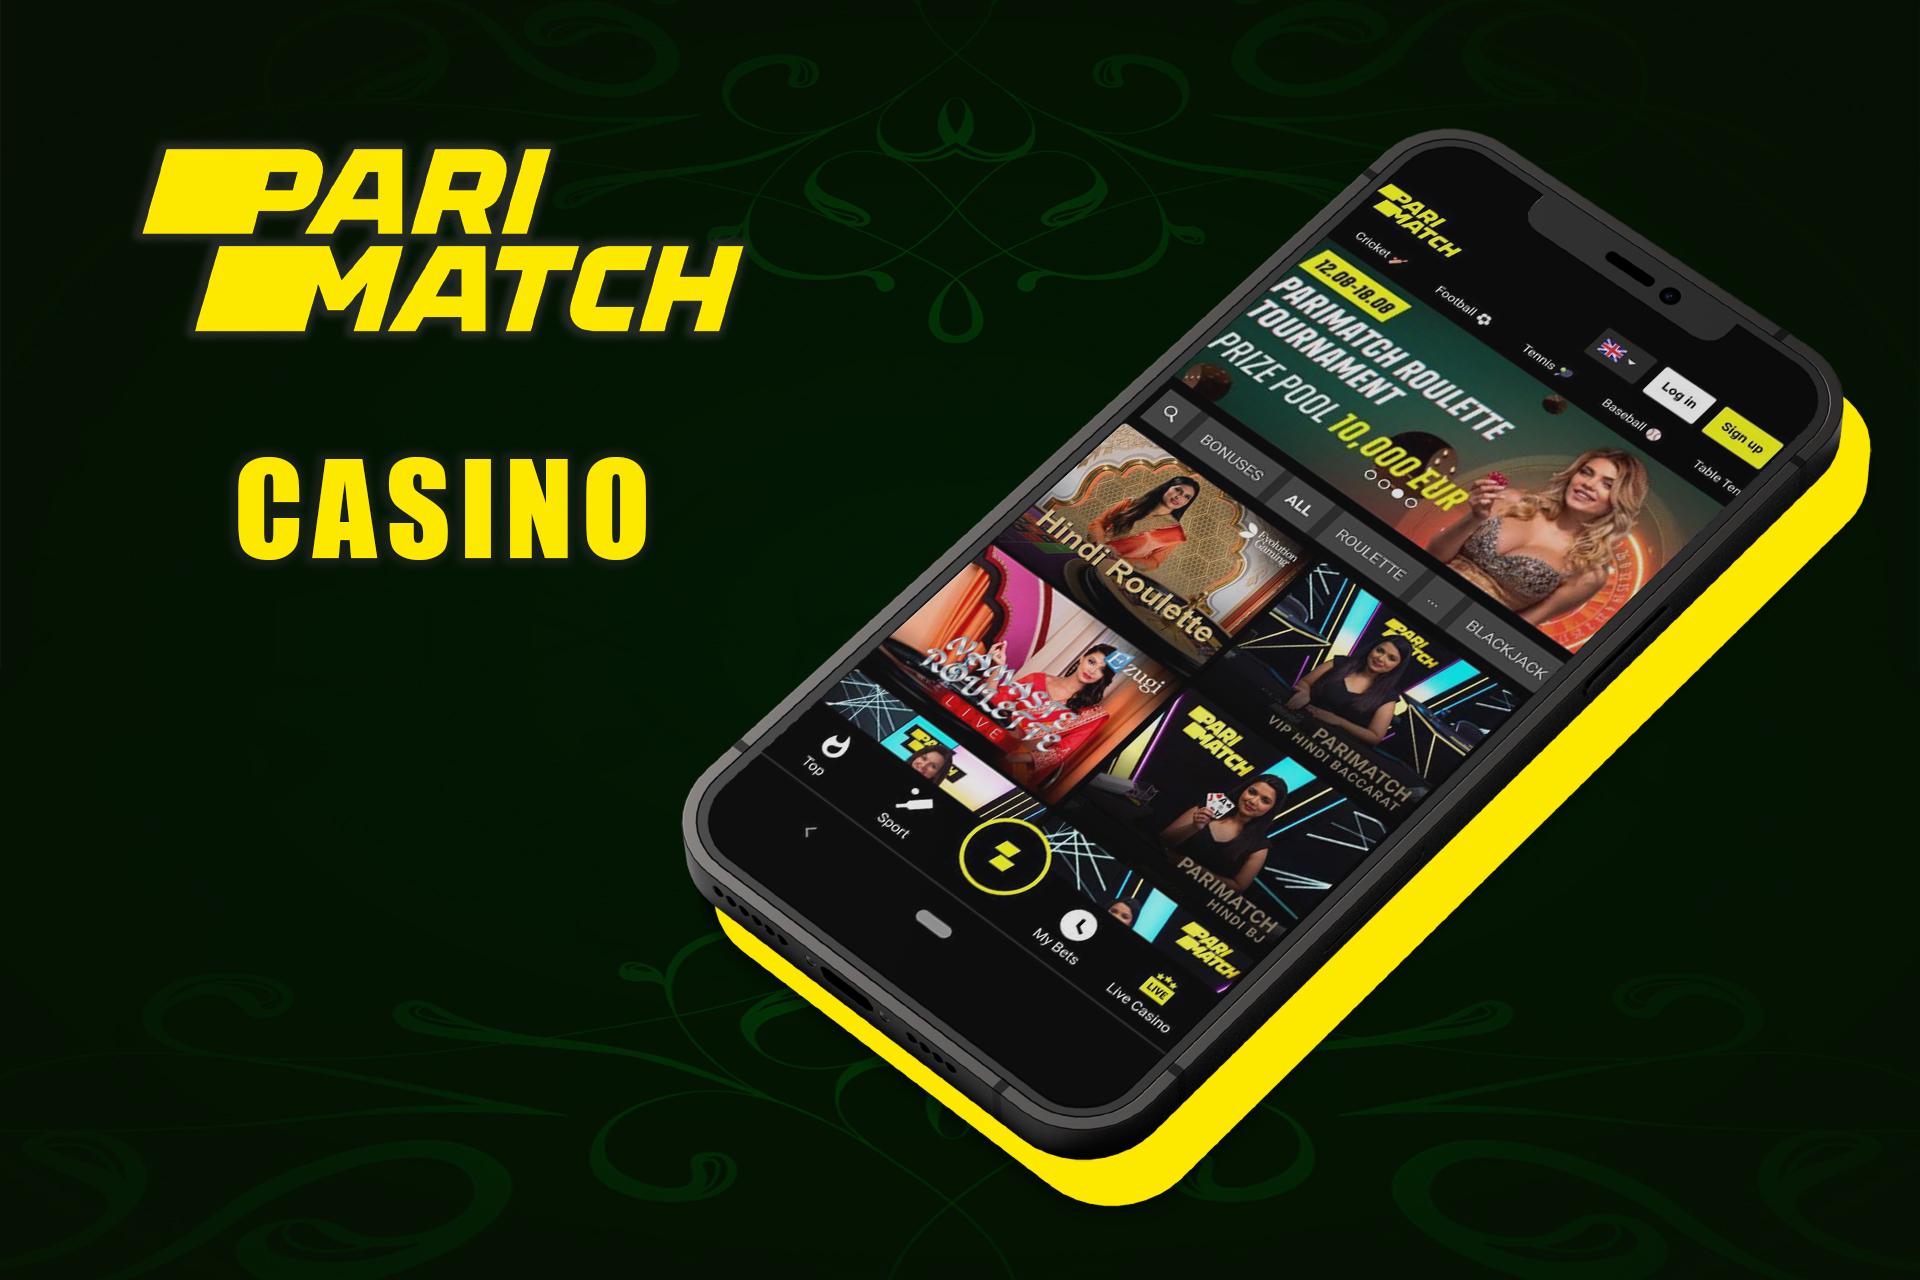 If you are a fan of casino games visit the special section.